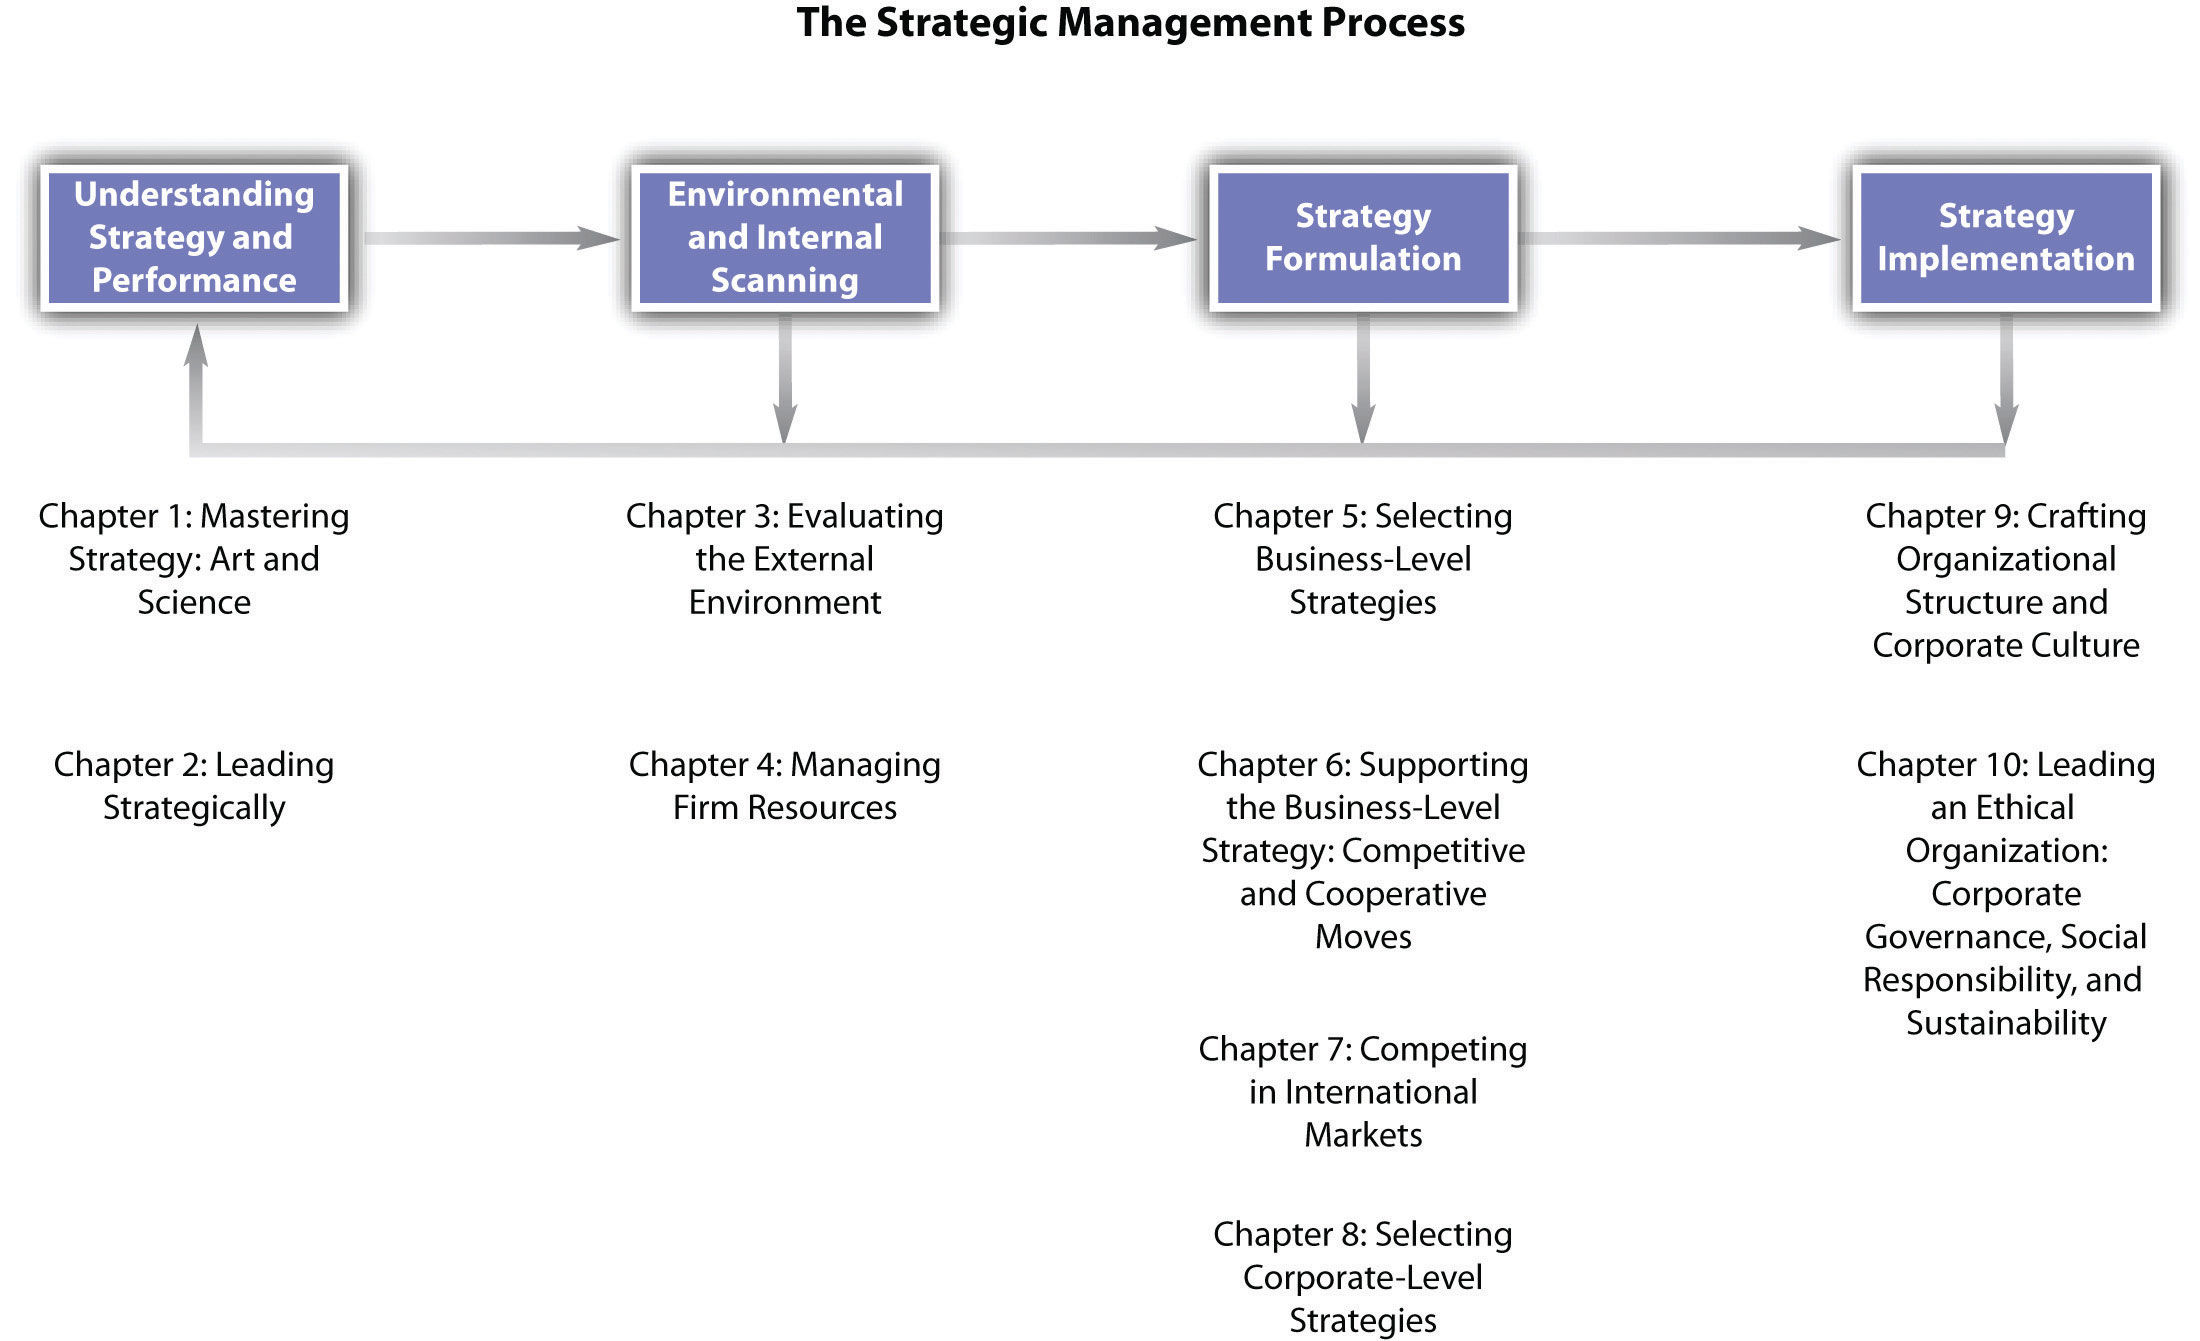 strategic management chapter 04 Best strategic management quizzes - take or create strategic management quizzes & trivia test yourself with strategic management quizzes, trivia, questions and answers create a quiz quizzes block iii chapter 5 strategic sourcing 12 questions strategic management practices.